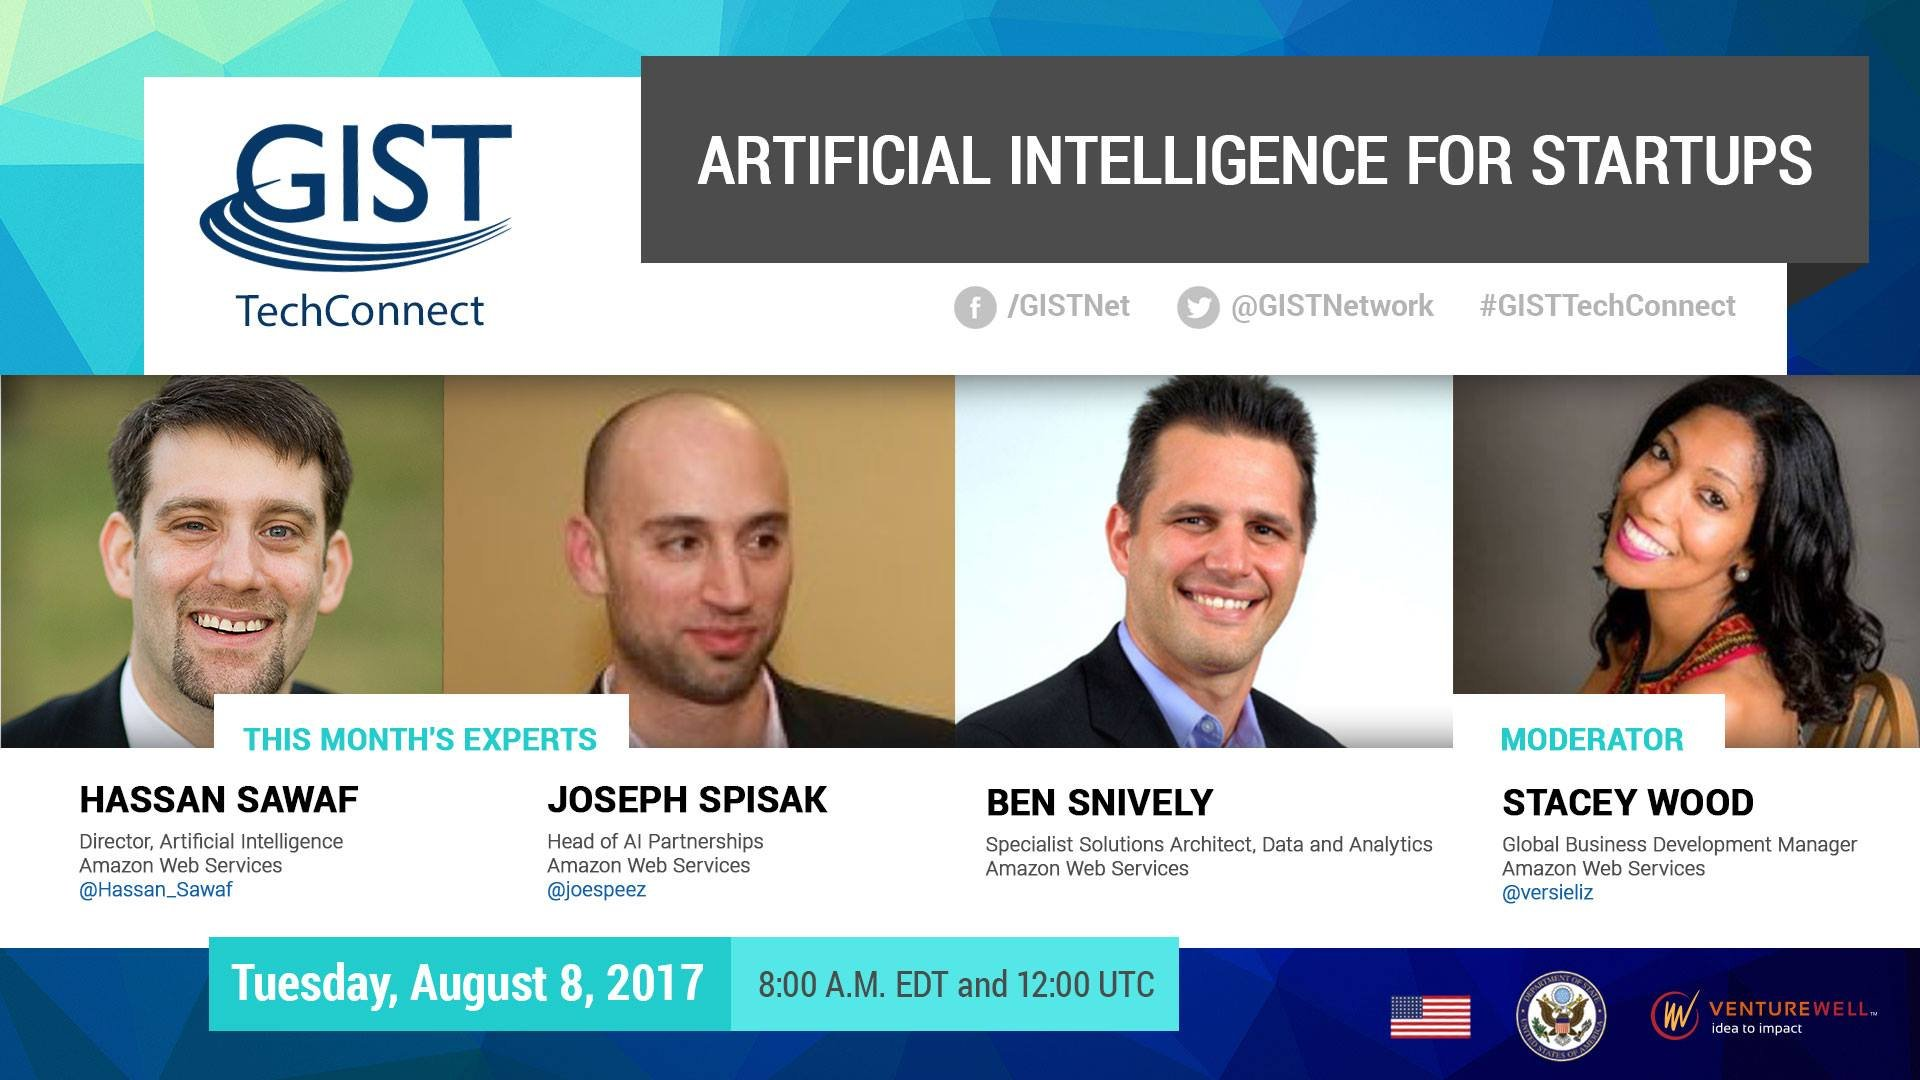 Artificial Intelligence for Startups